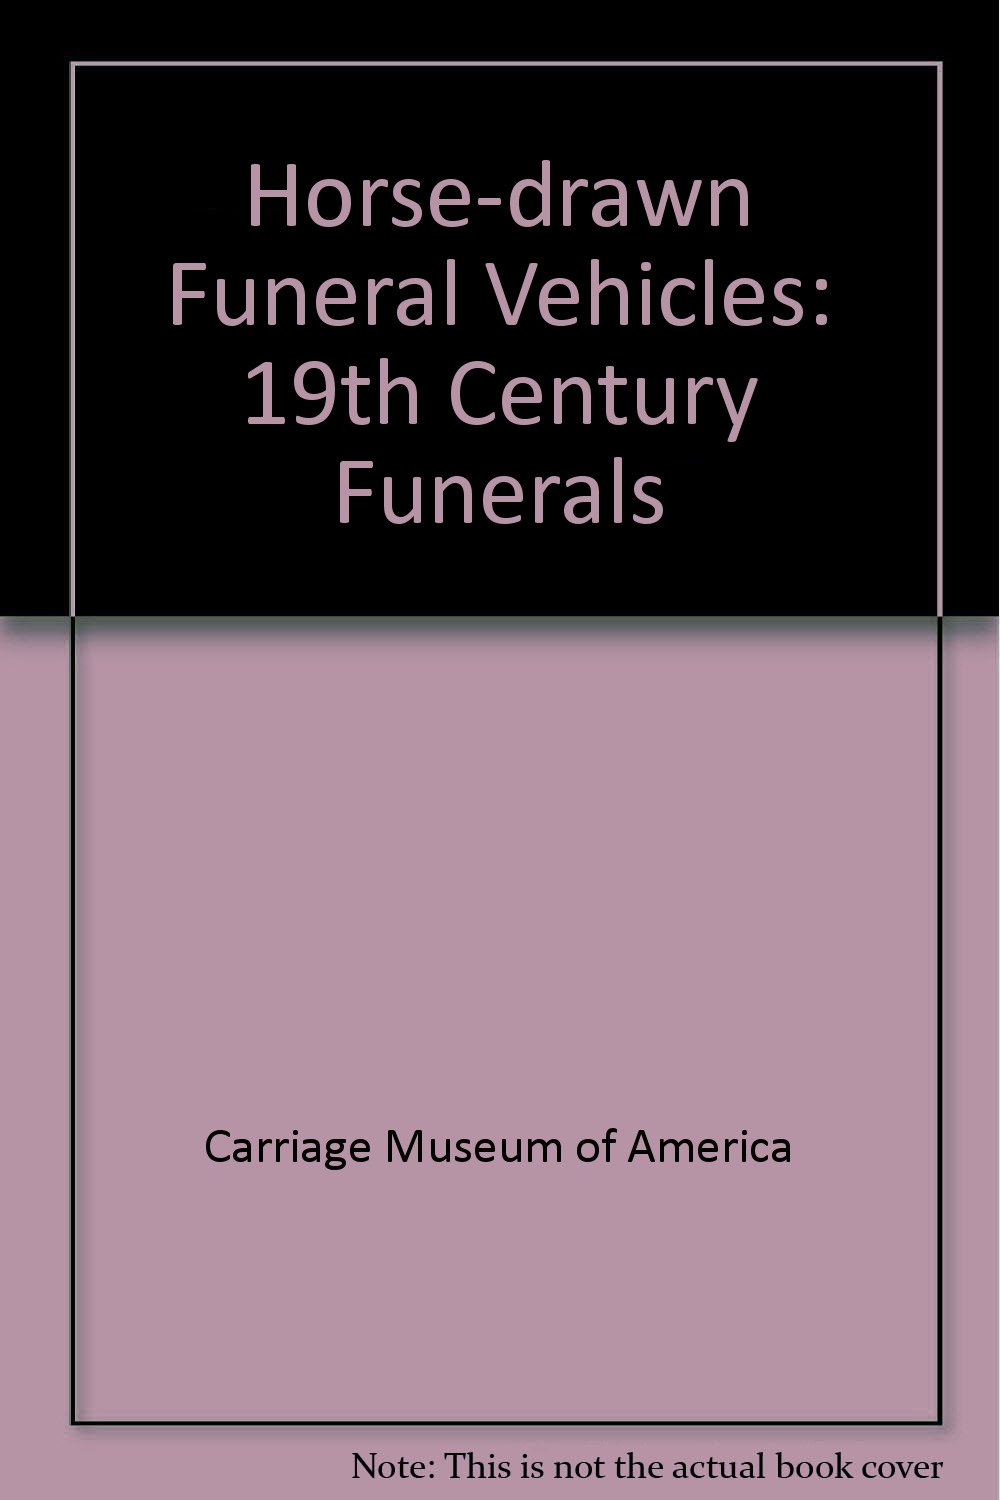 19th century home funeral before the turn of the century - Horse Drawn Funeral Vehicles 19th Century Funerals Michael P D Amato 9781880499146 Amazon Com Books